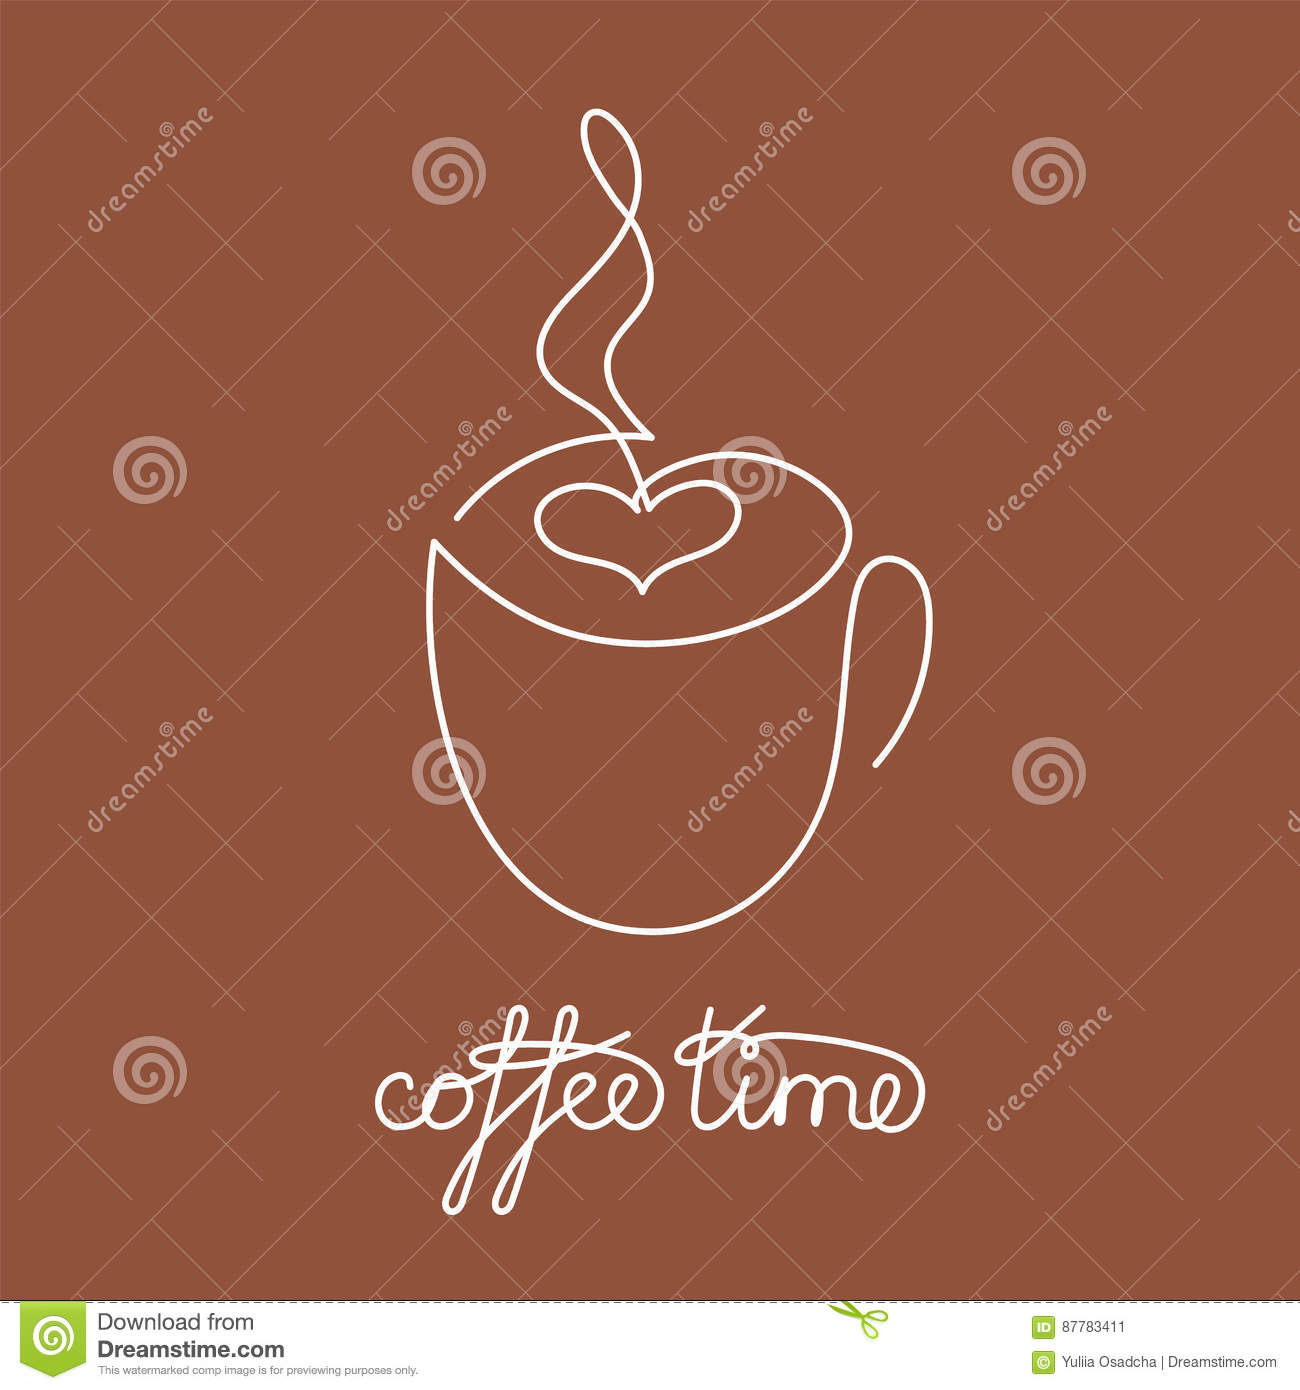 Vector Drawing Lines Xbox One : Coffee logo cup contour line drawing vector illustration